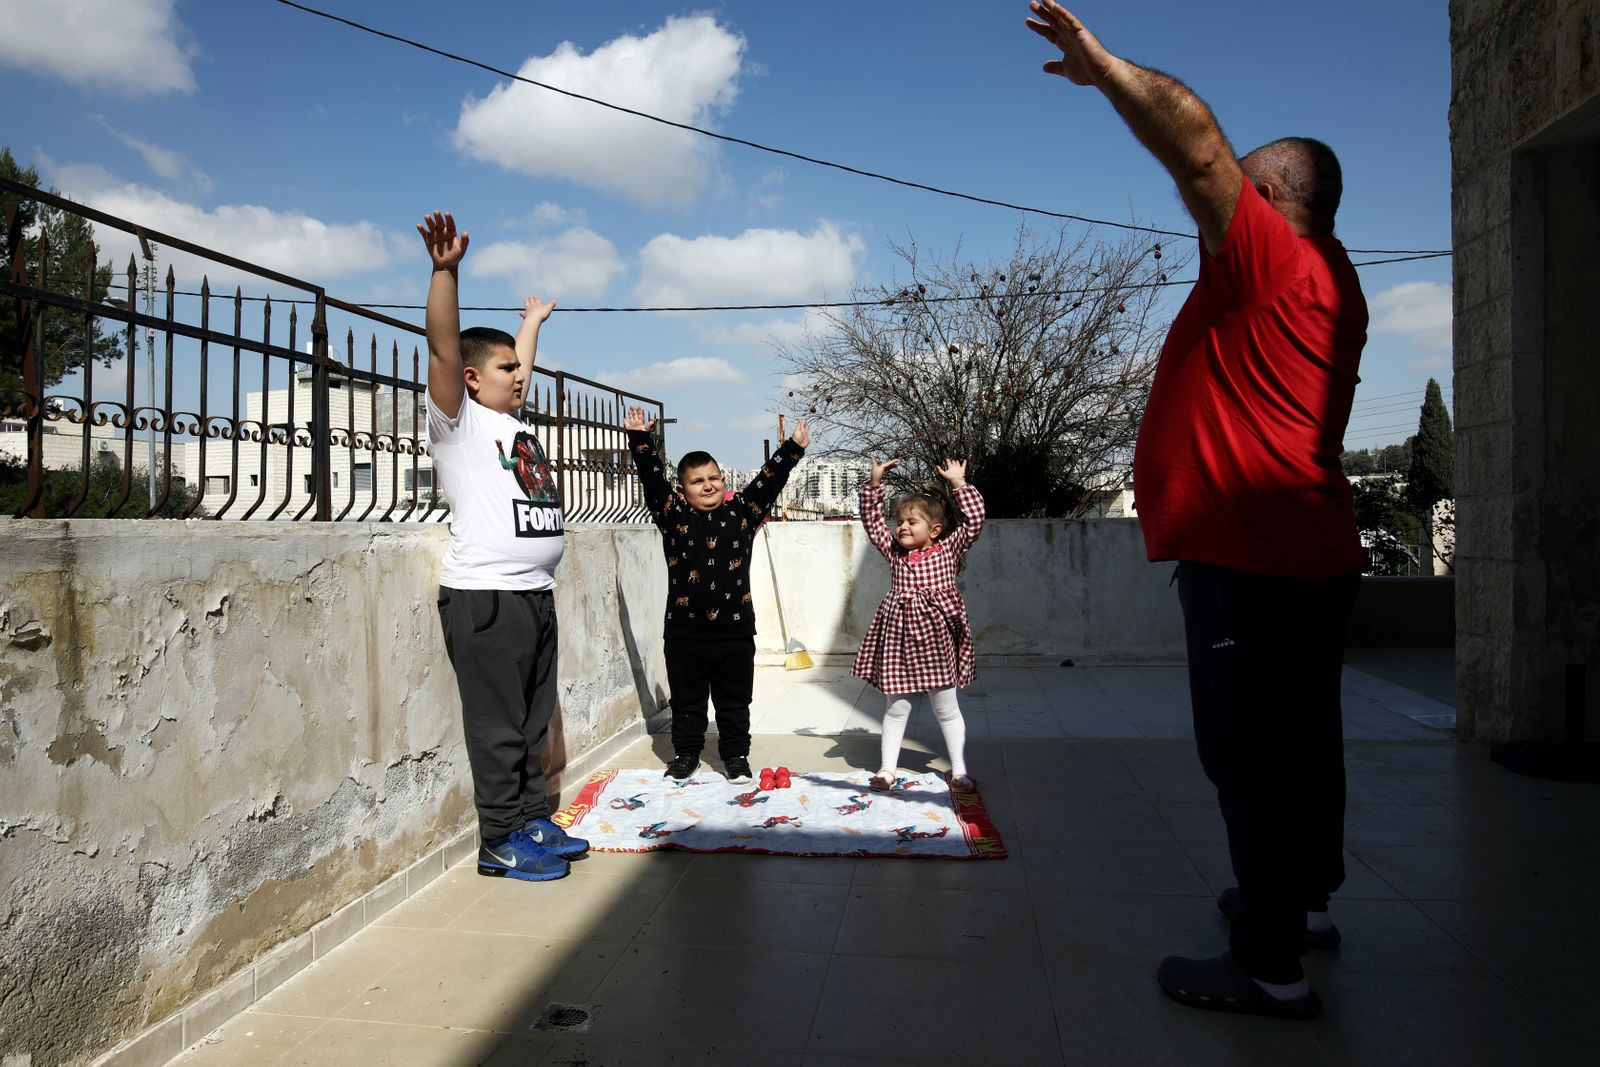 Palestinian father Victor Anton Sara, 41, exercises with his children Anton, 11, Elie, 6, and Silva, 5, while observing a partial lockdown to curb the spread of the coronavirus disease (COVID-19) at their home in Jerusalem